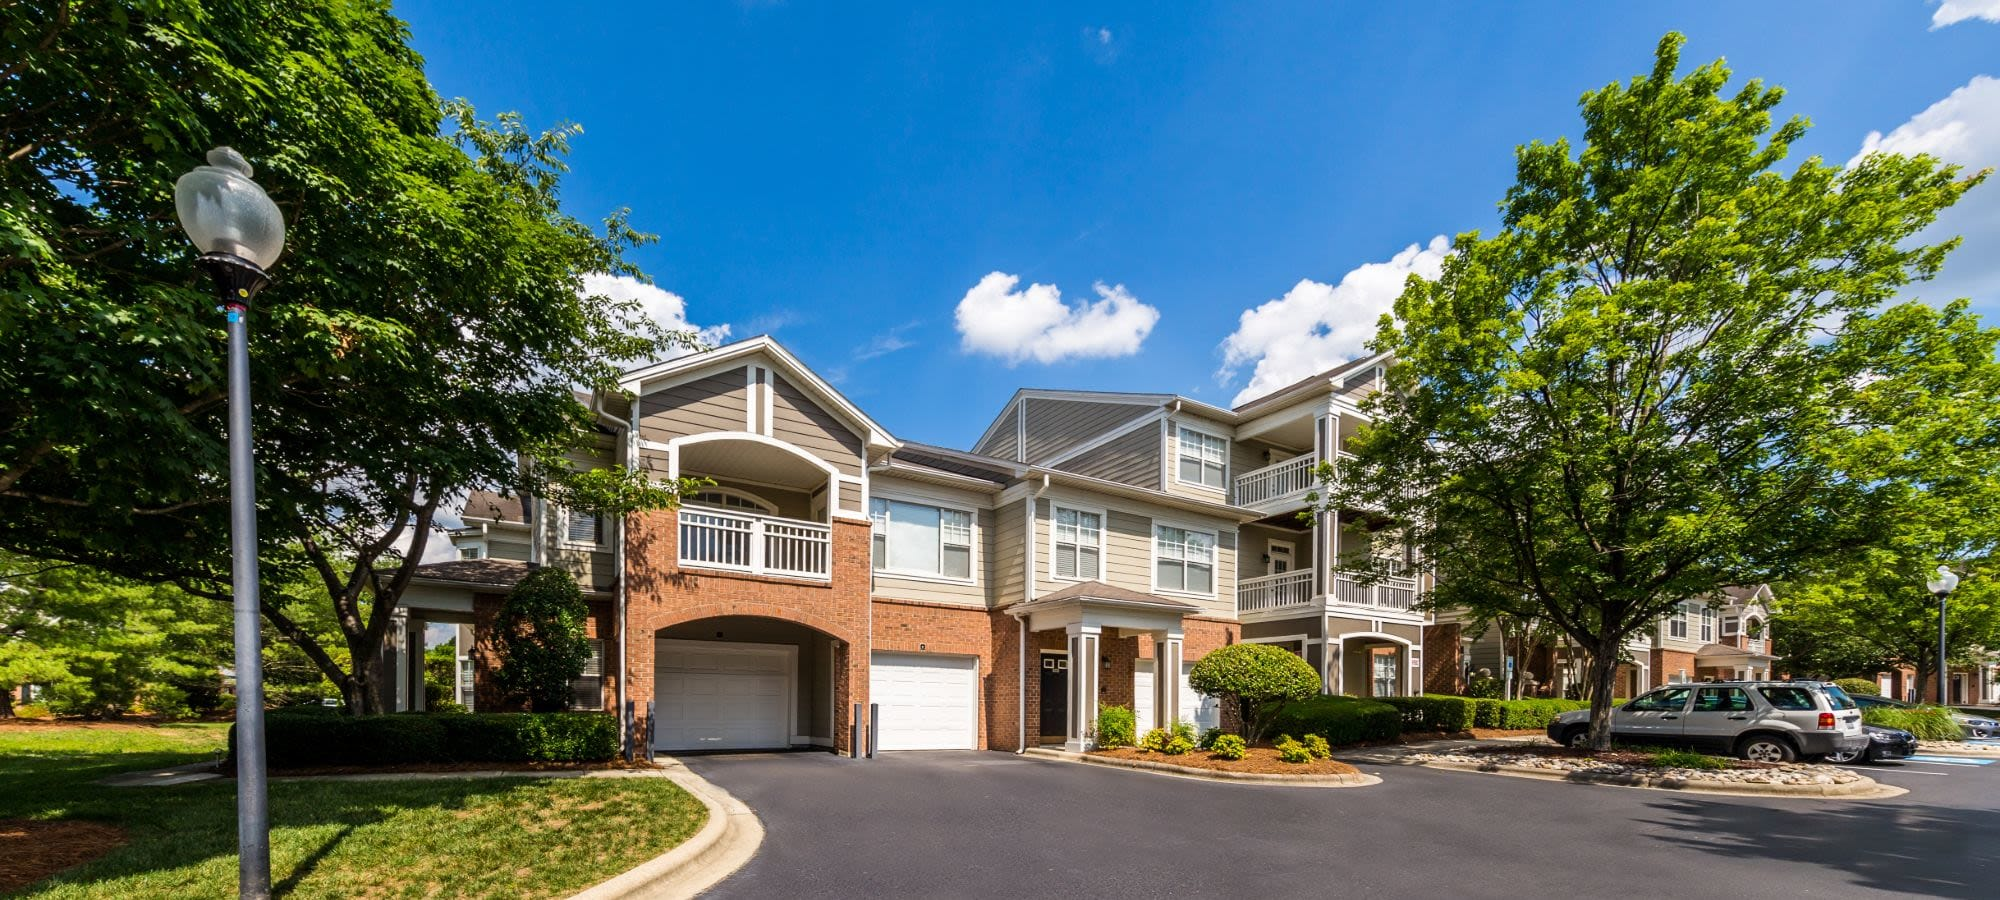 Apply to live at The Preserve at Ballantyne Commons in Charlotte, North Carolina